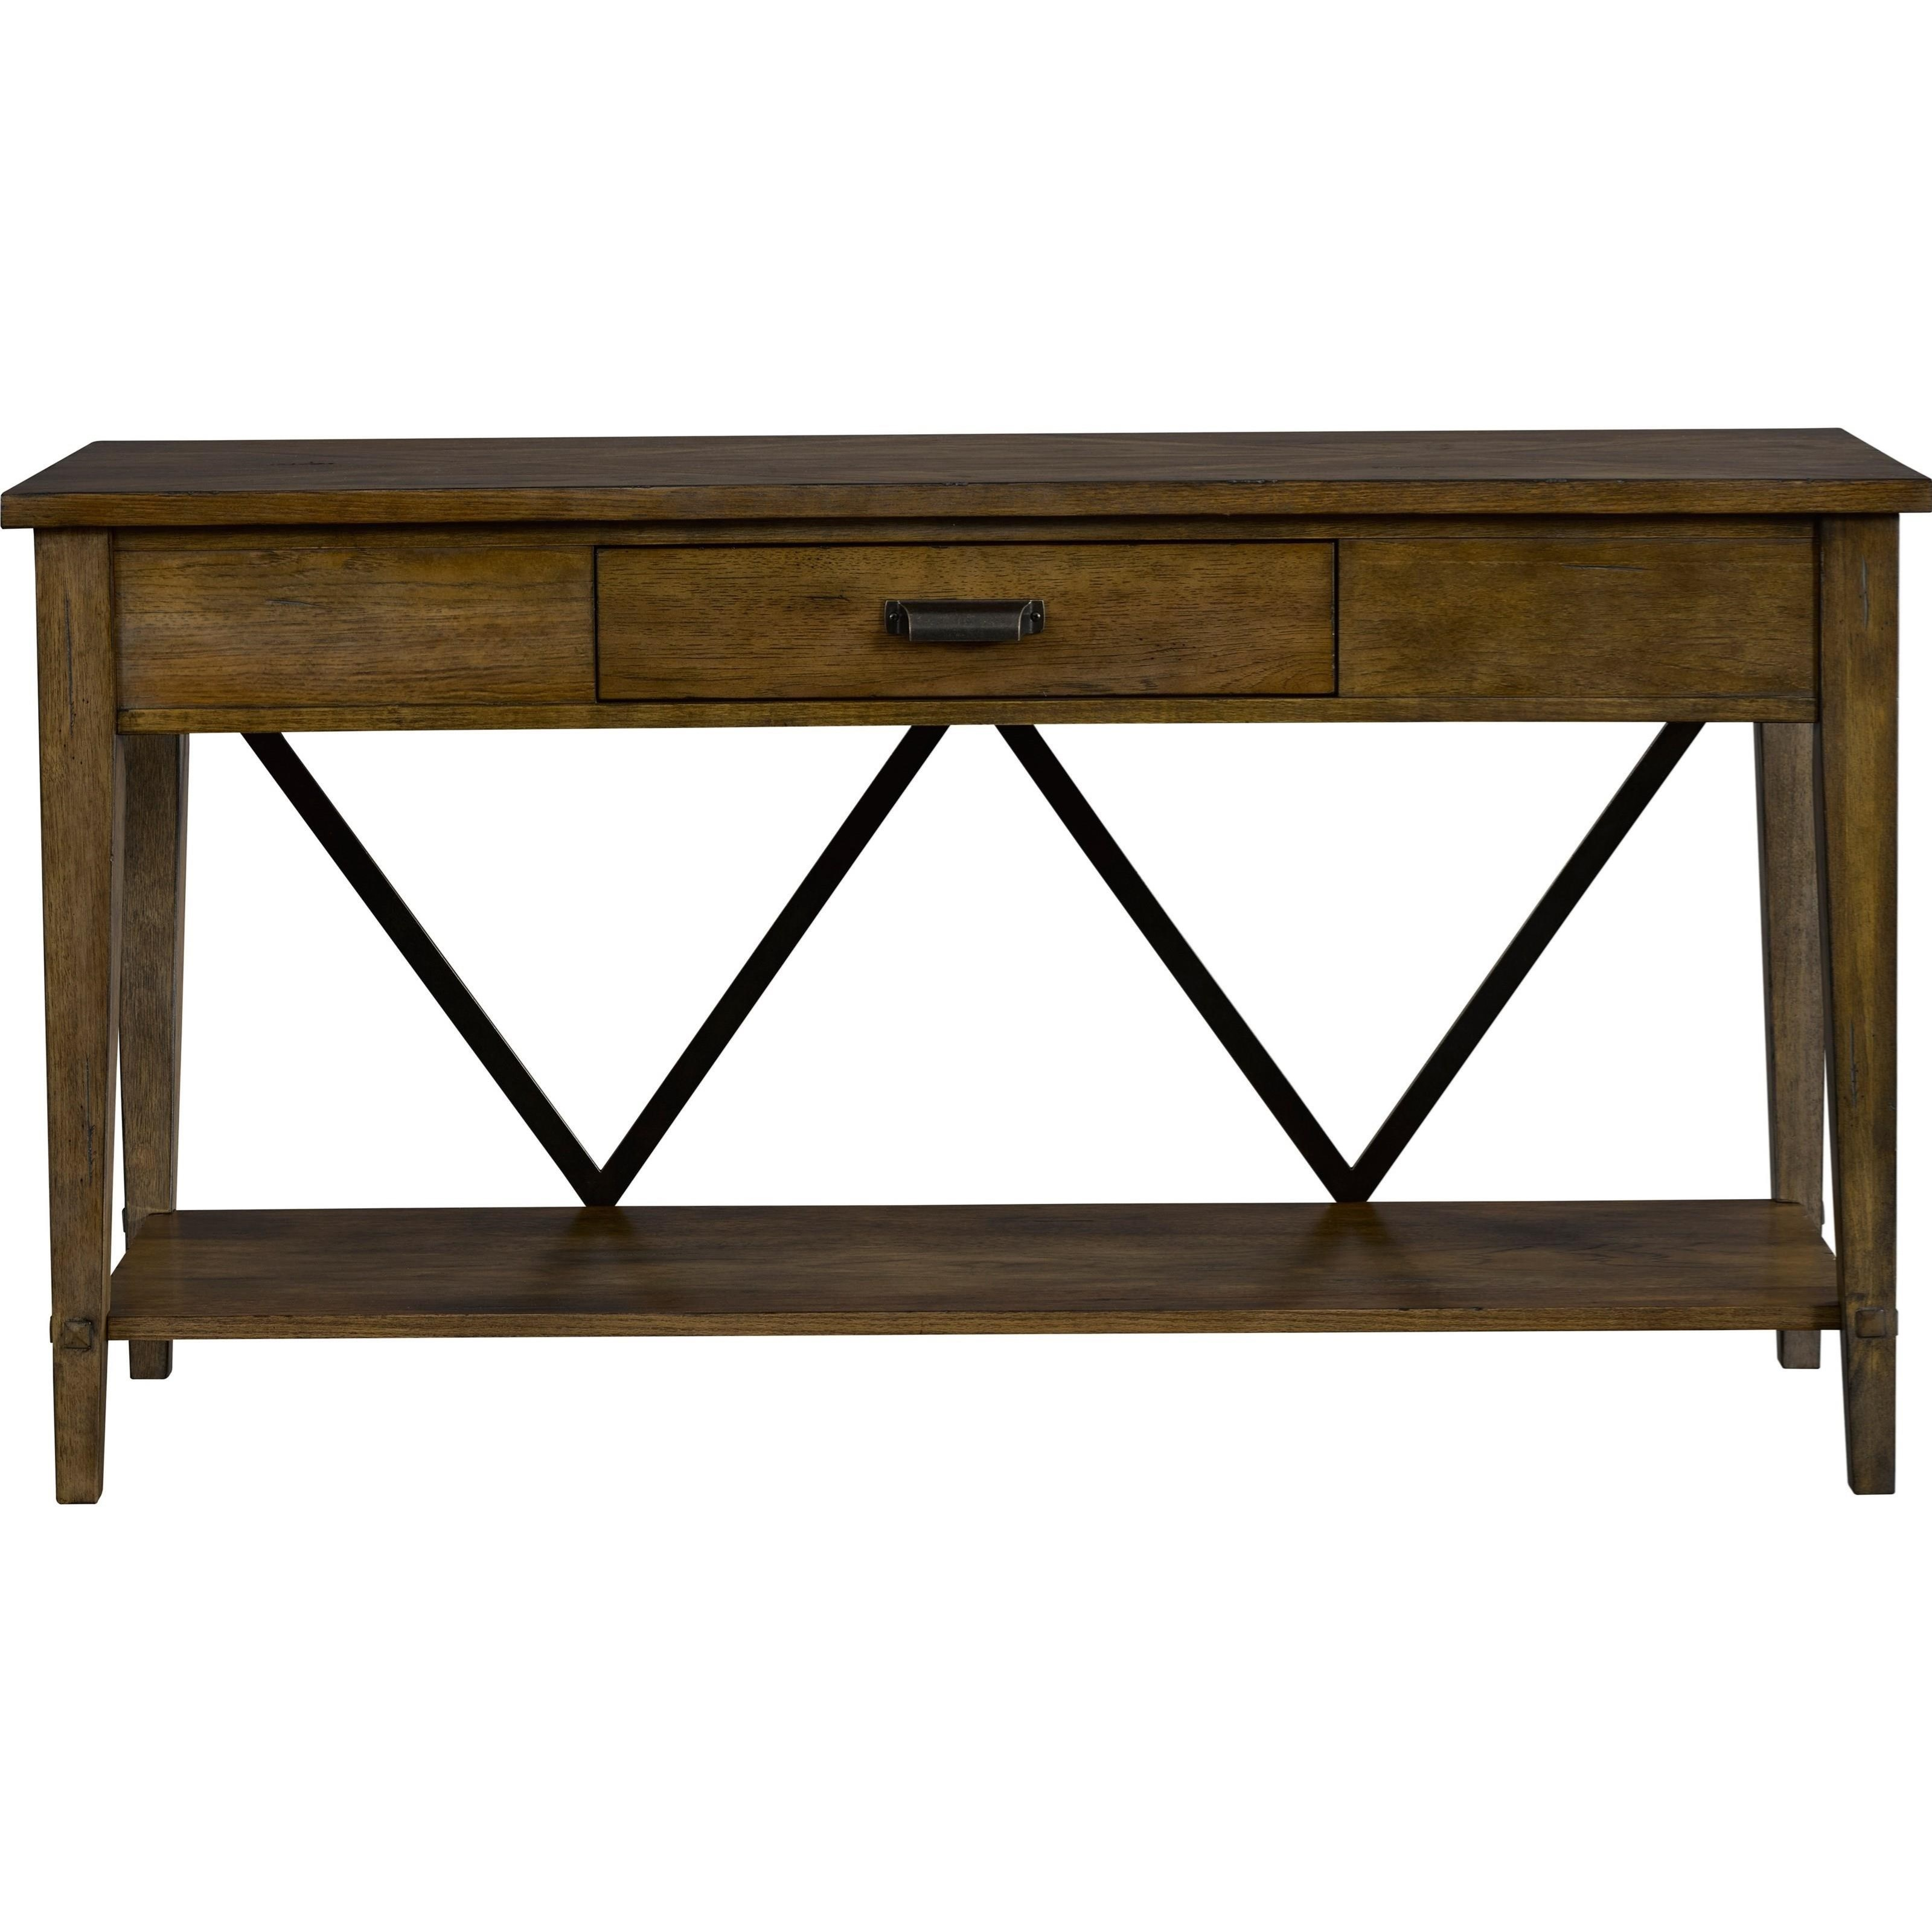 Broyhill furniture creedmoor 1 drawer sofa console table for Sofa console